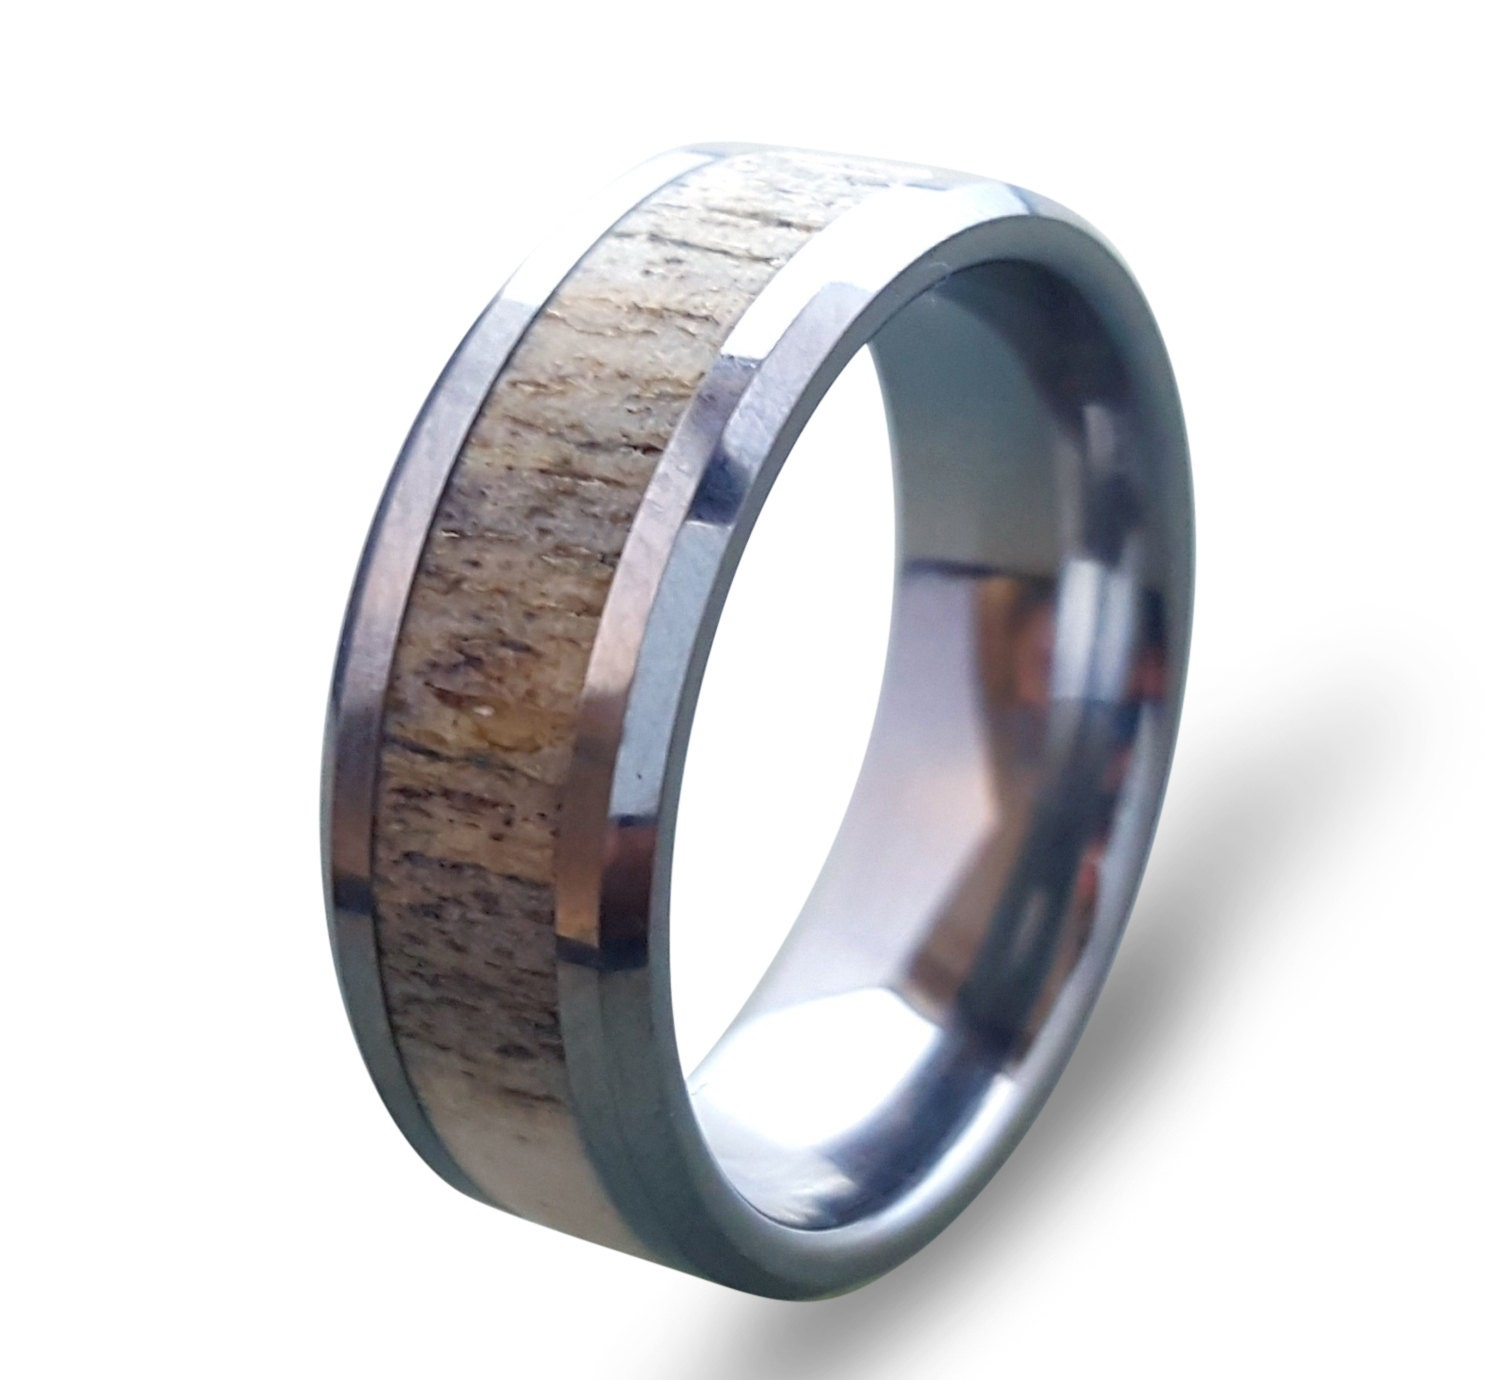 elk the tungsten ring wedding men rings antler tying s real knot pin